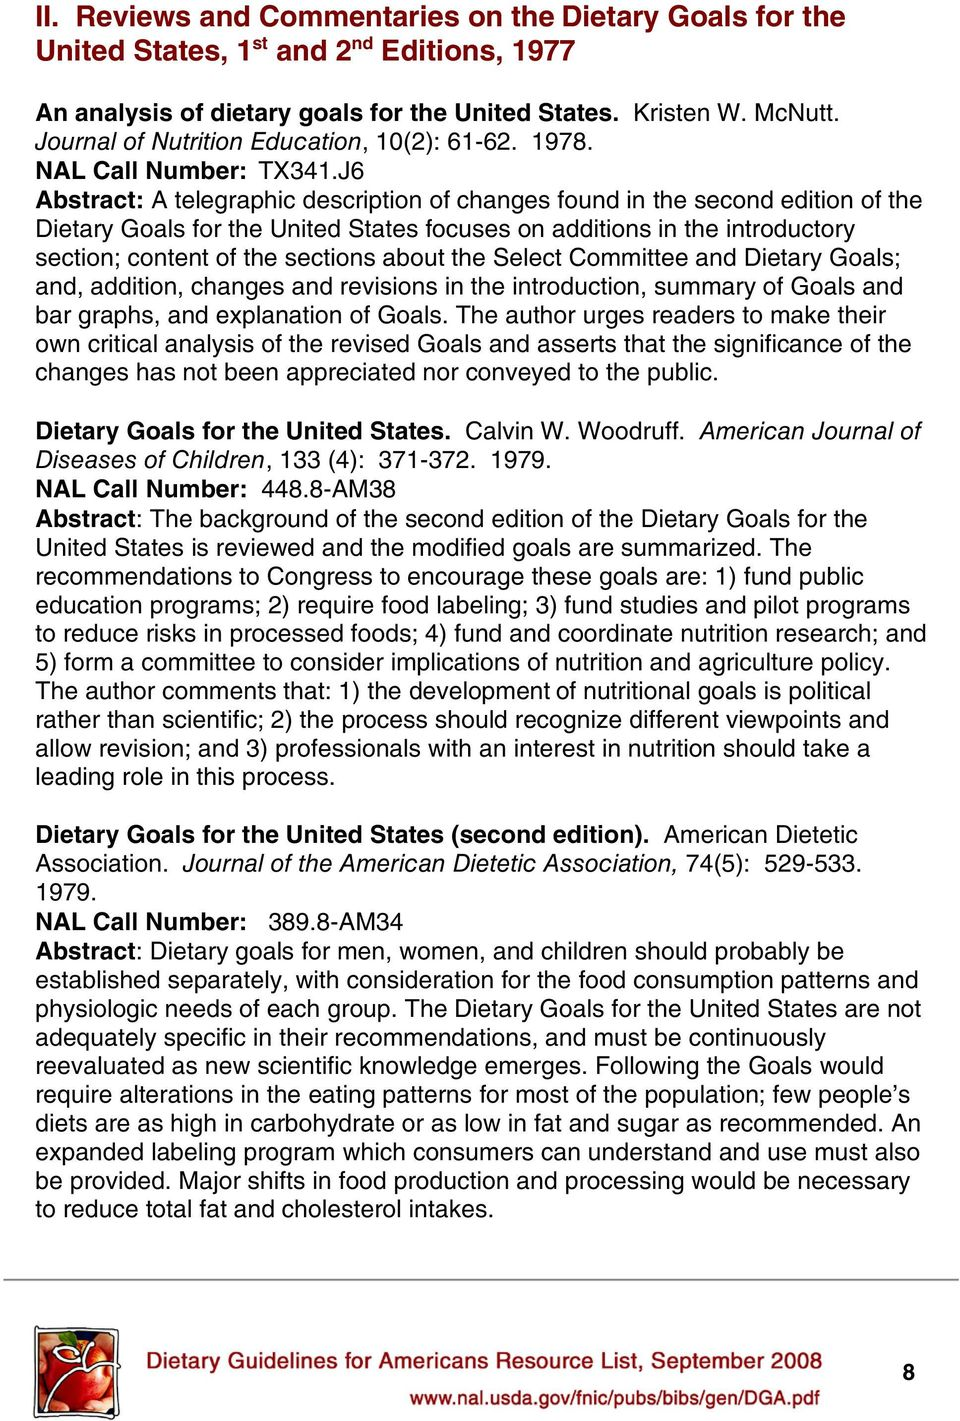 J6 Abstract: A telegraphic description of changes found in the second edition of the Dietary Goals for the United States focuses on additions in the introductory section; content of the sections